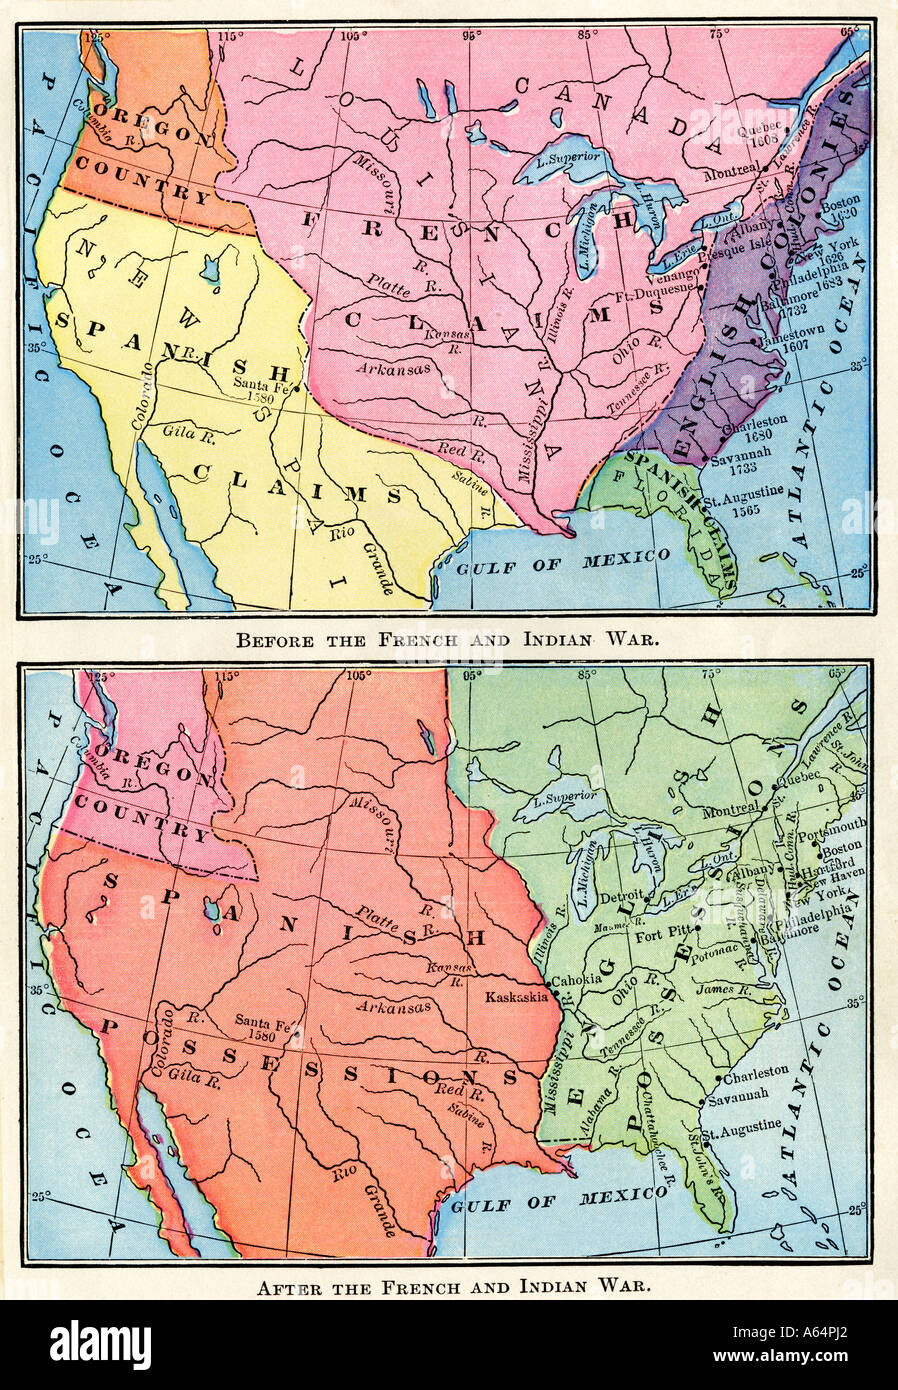 Maps of north american british spanish and french colonies before maps of north american british spanish and french colonies before and after the french and indian war 1700s color lithograph gumiabroncs Choice Image